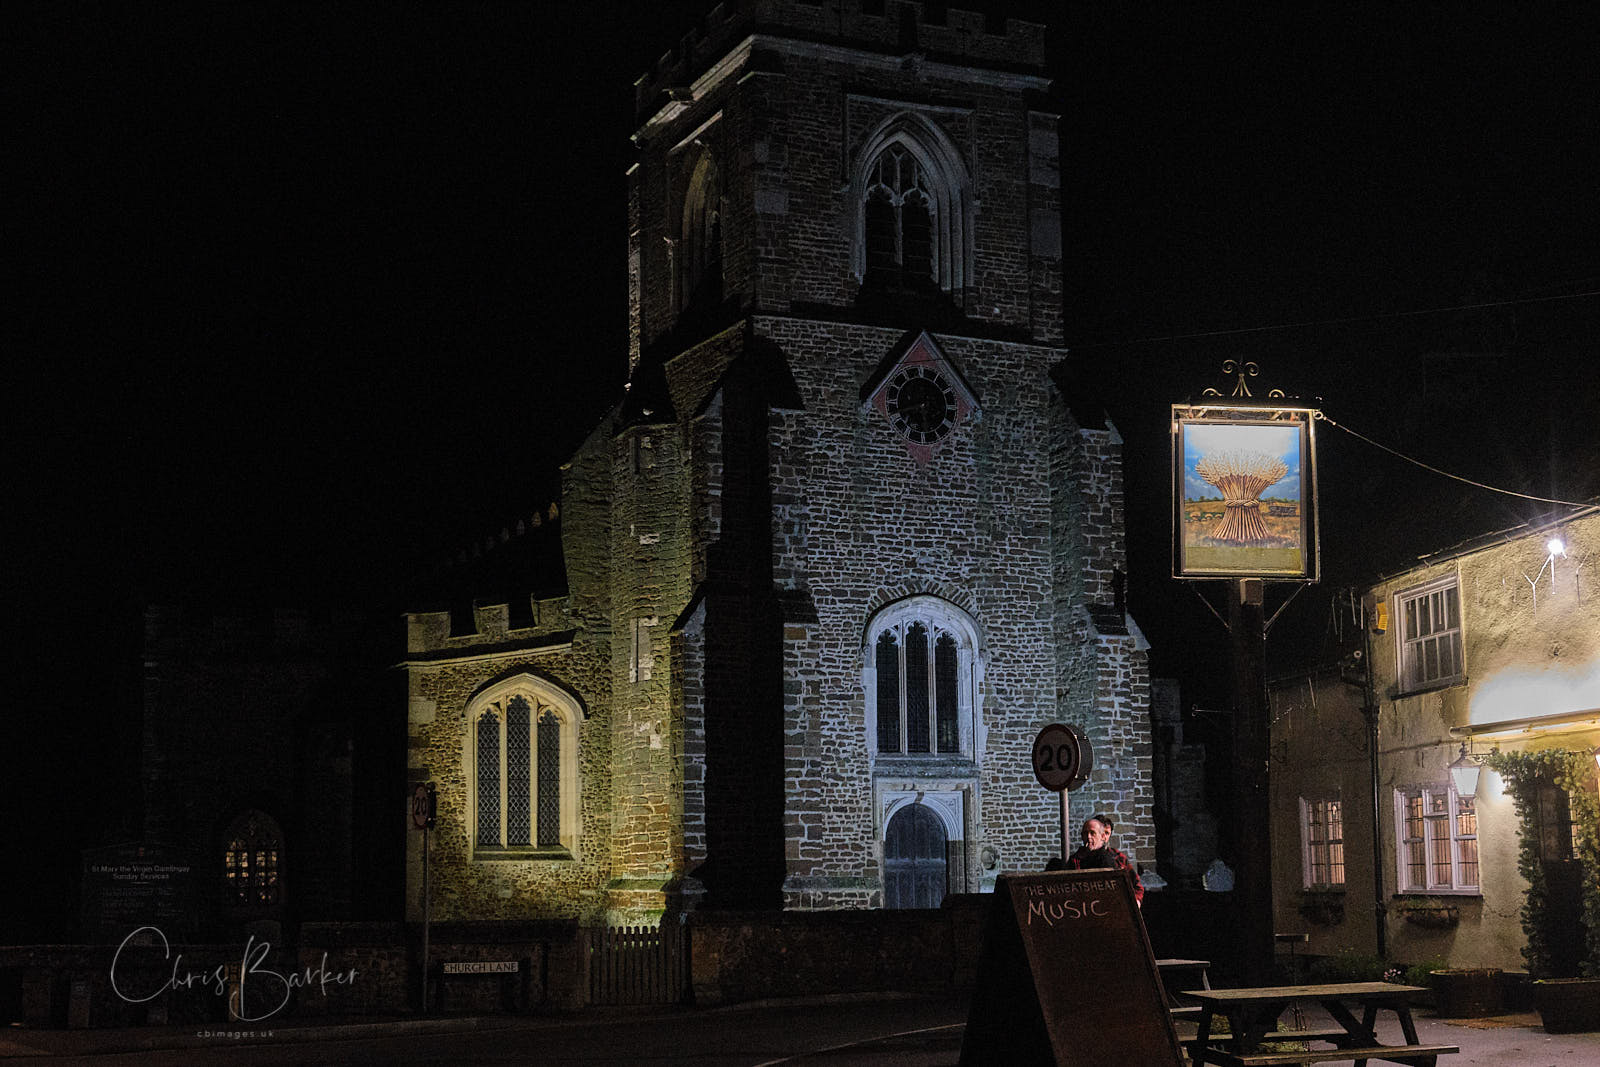 Pub and church at night